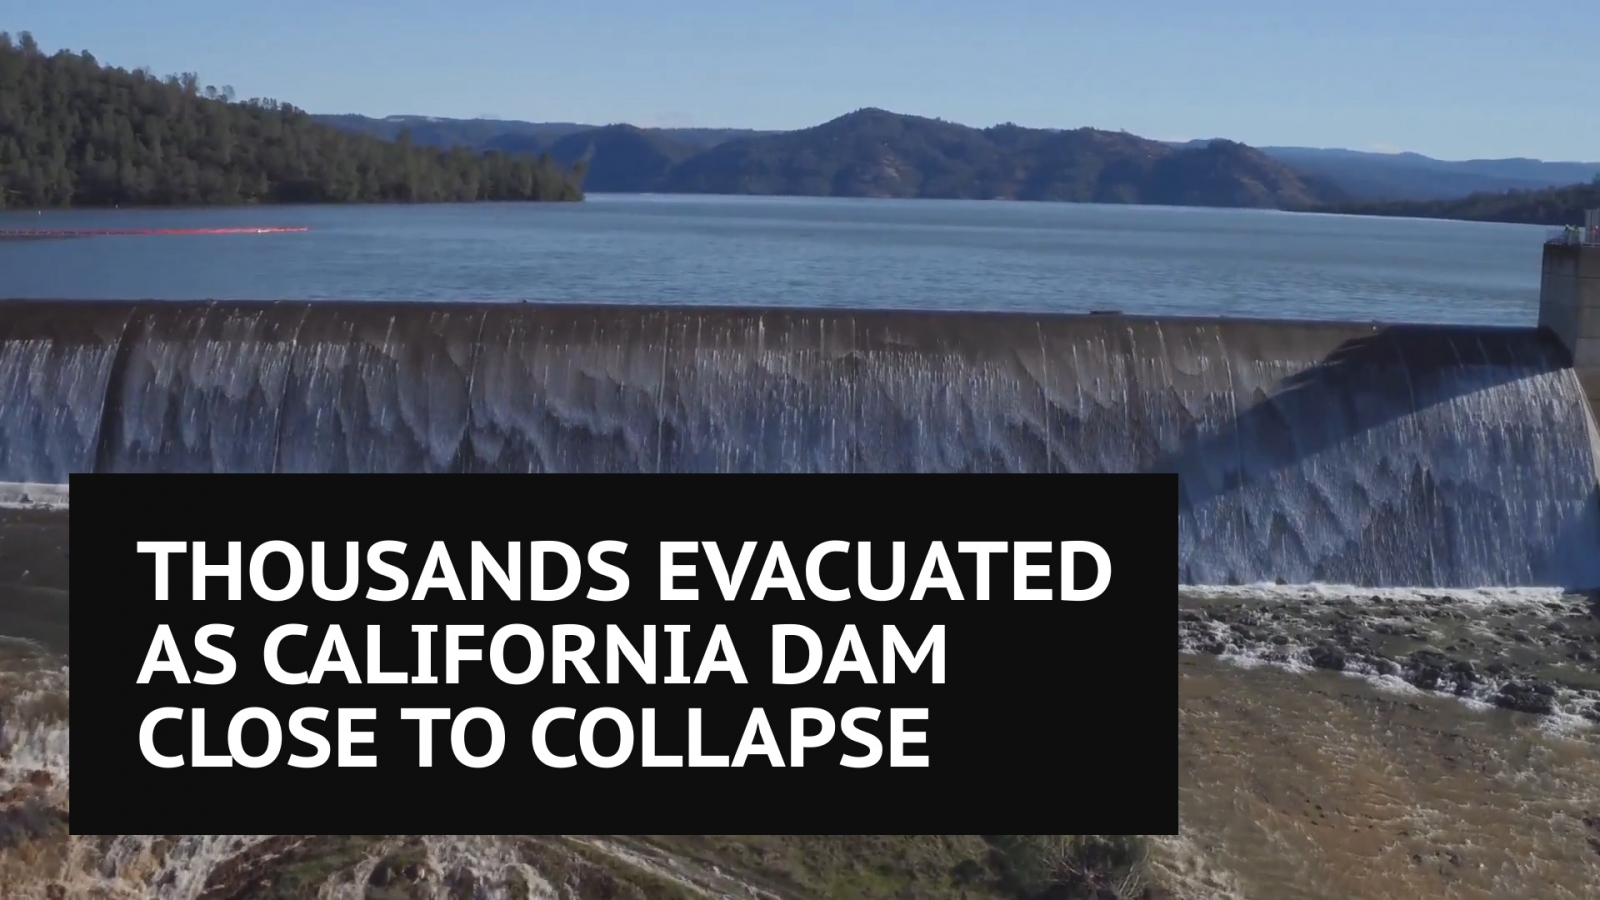 Thousands evacuated after massive hole threatens to collapse California dam